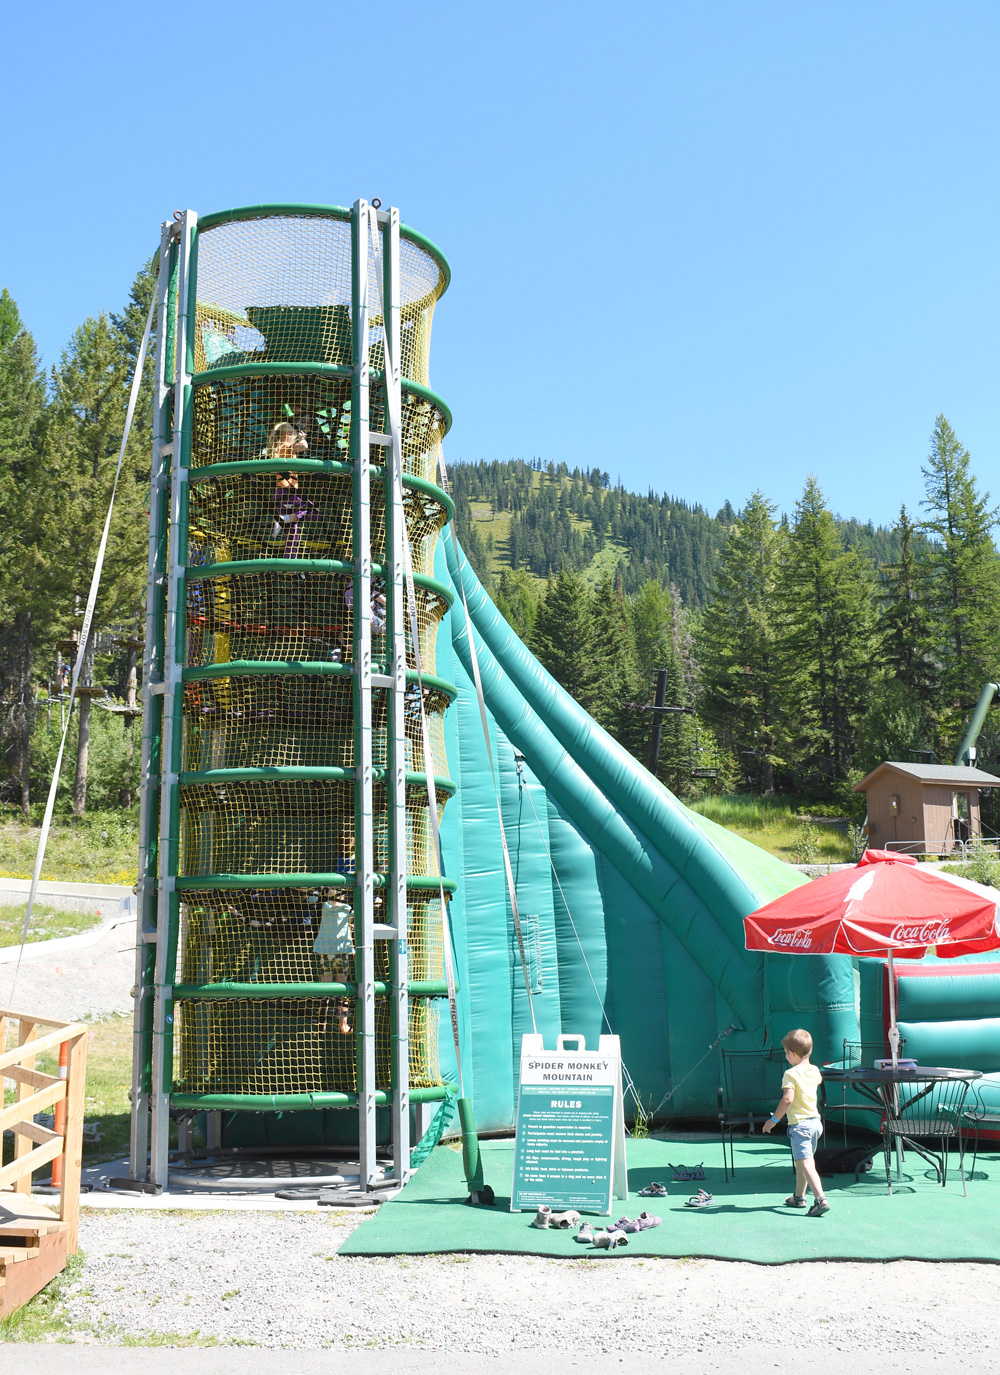 Whitefish Mountain Resort activities Spider Monkey Mountain and tall inflatable slide